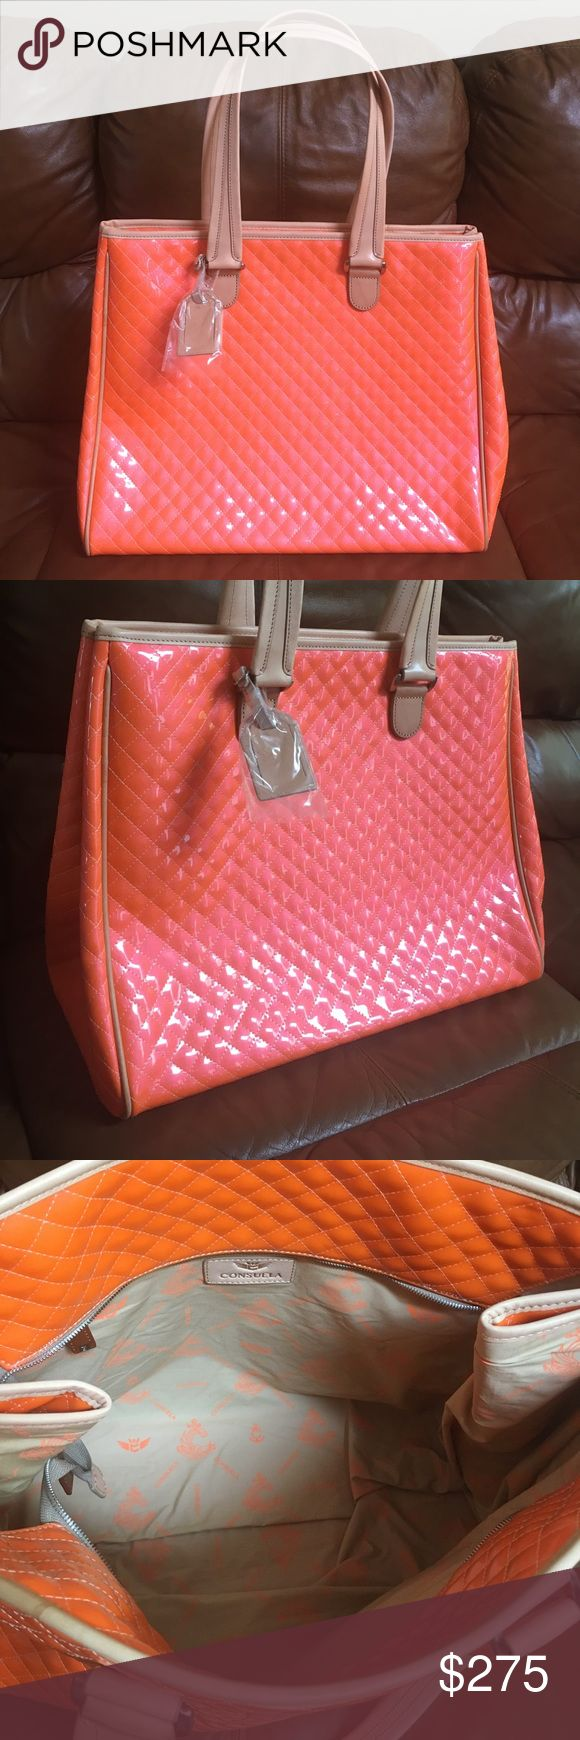 "New Consuela Candy Crush Tangerine Grand Tote Bag Hello, this is a fabulous Italian leather Consuela Grand Tote bag. It is brand new! The style is candy crush and the color is tangerine. Dimensions: 18.25"" (W) x 15"" (H) x 9.5"" (D); 11"" Drop. Double leather handles, full top zip, dust bag included. Please send me any questions, thanks! Consuela Bags Totes"